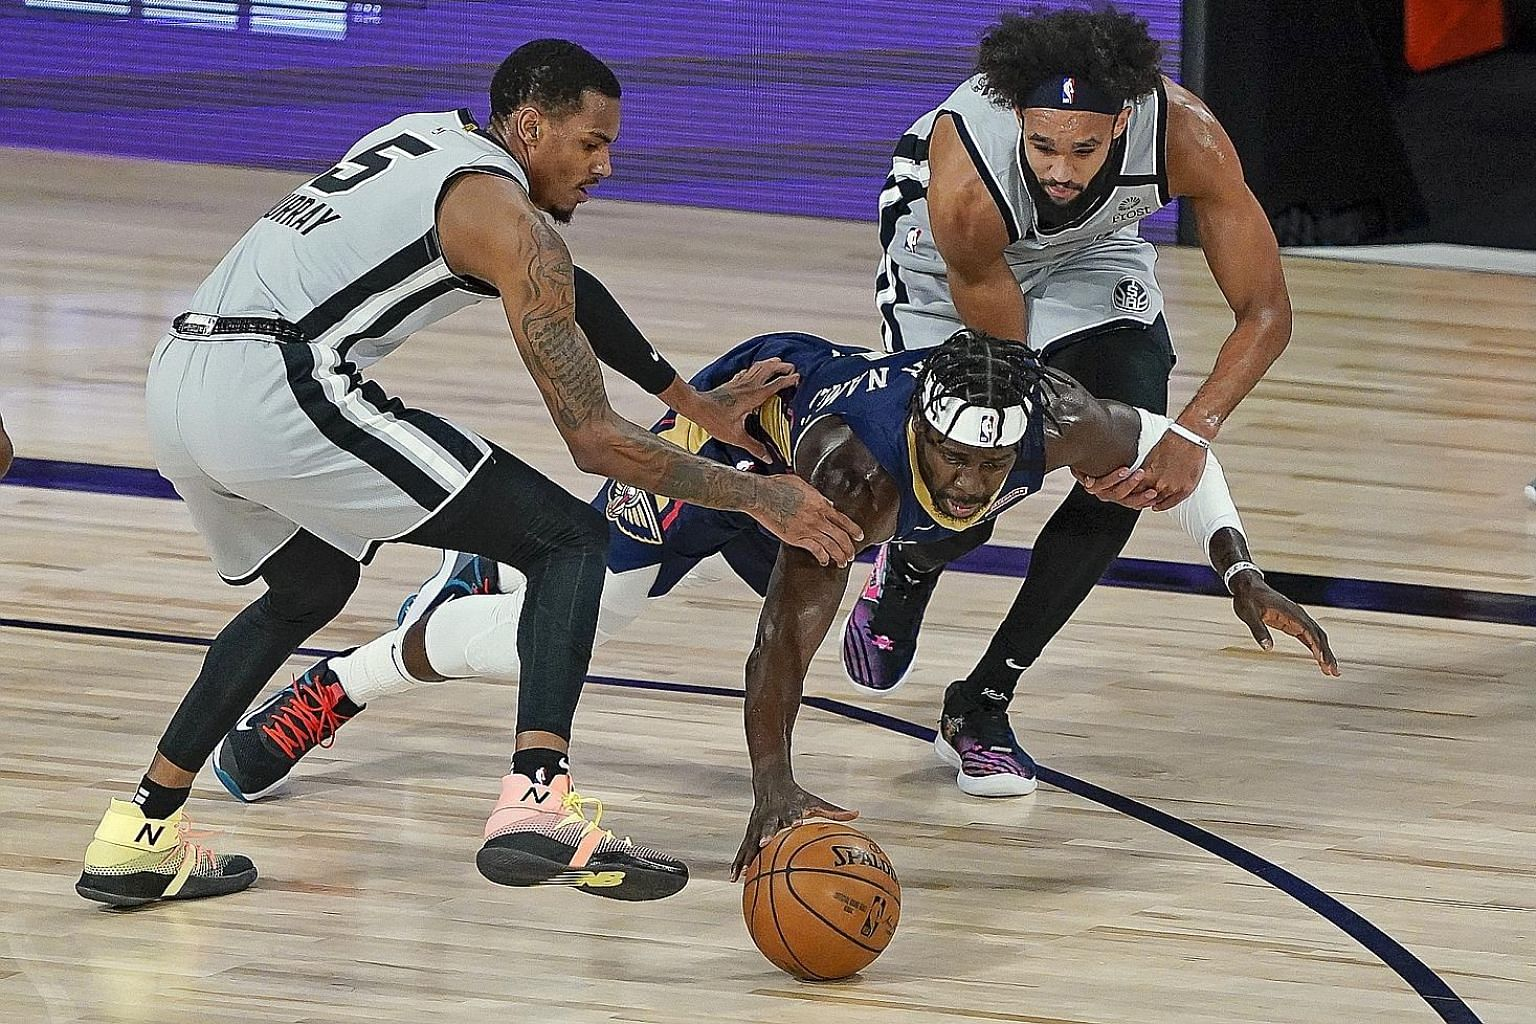 Pelicans guard Jrue Holiday diving for a loose ball between Spurs guards Dejounte Murray and Derrick White during their NBA game on Sunday. San Antonio won 122-113 to knock New Orleans out of play-off contention. There are two spots left with the Spu